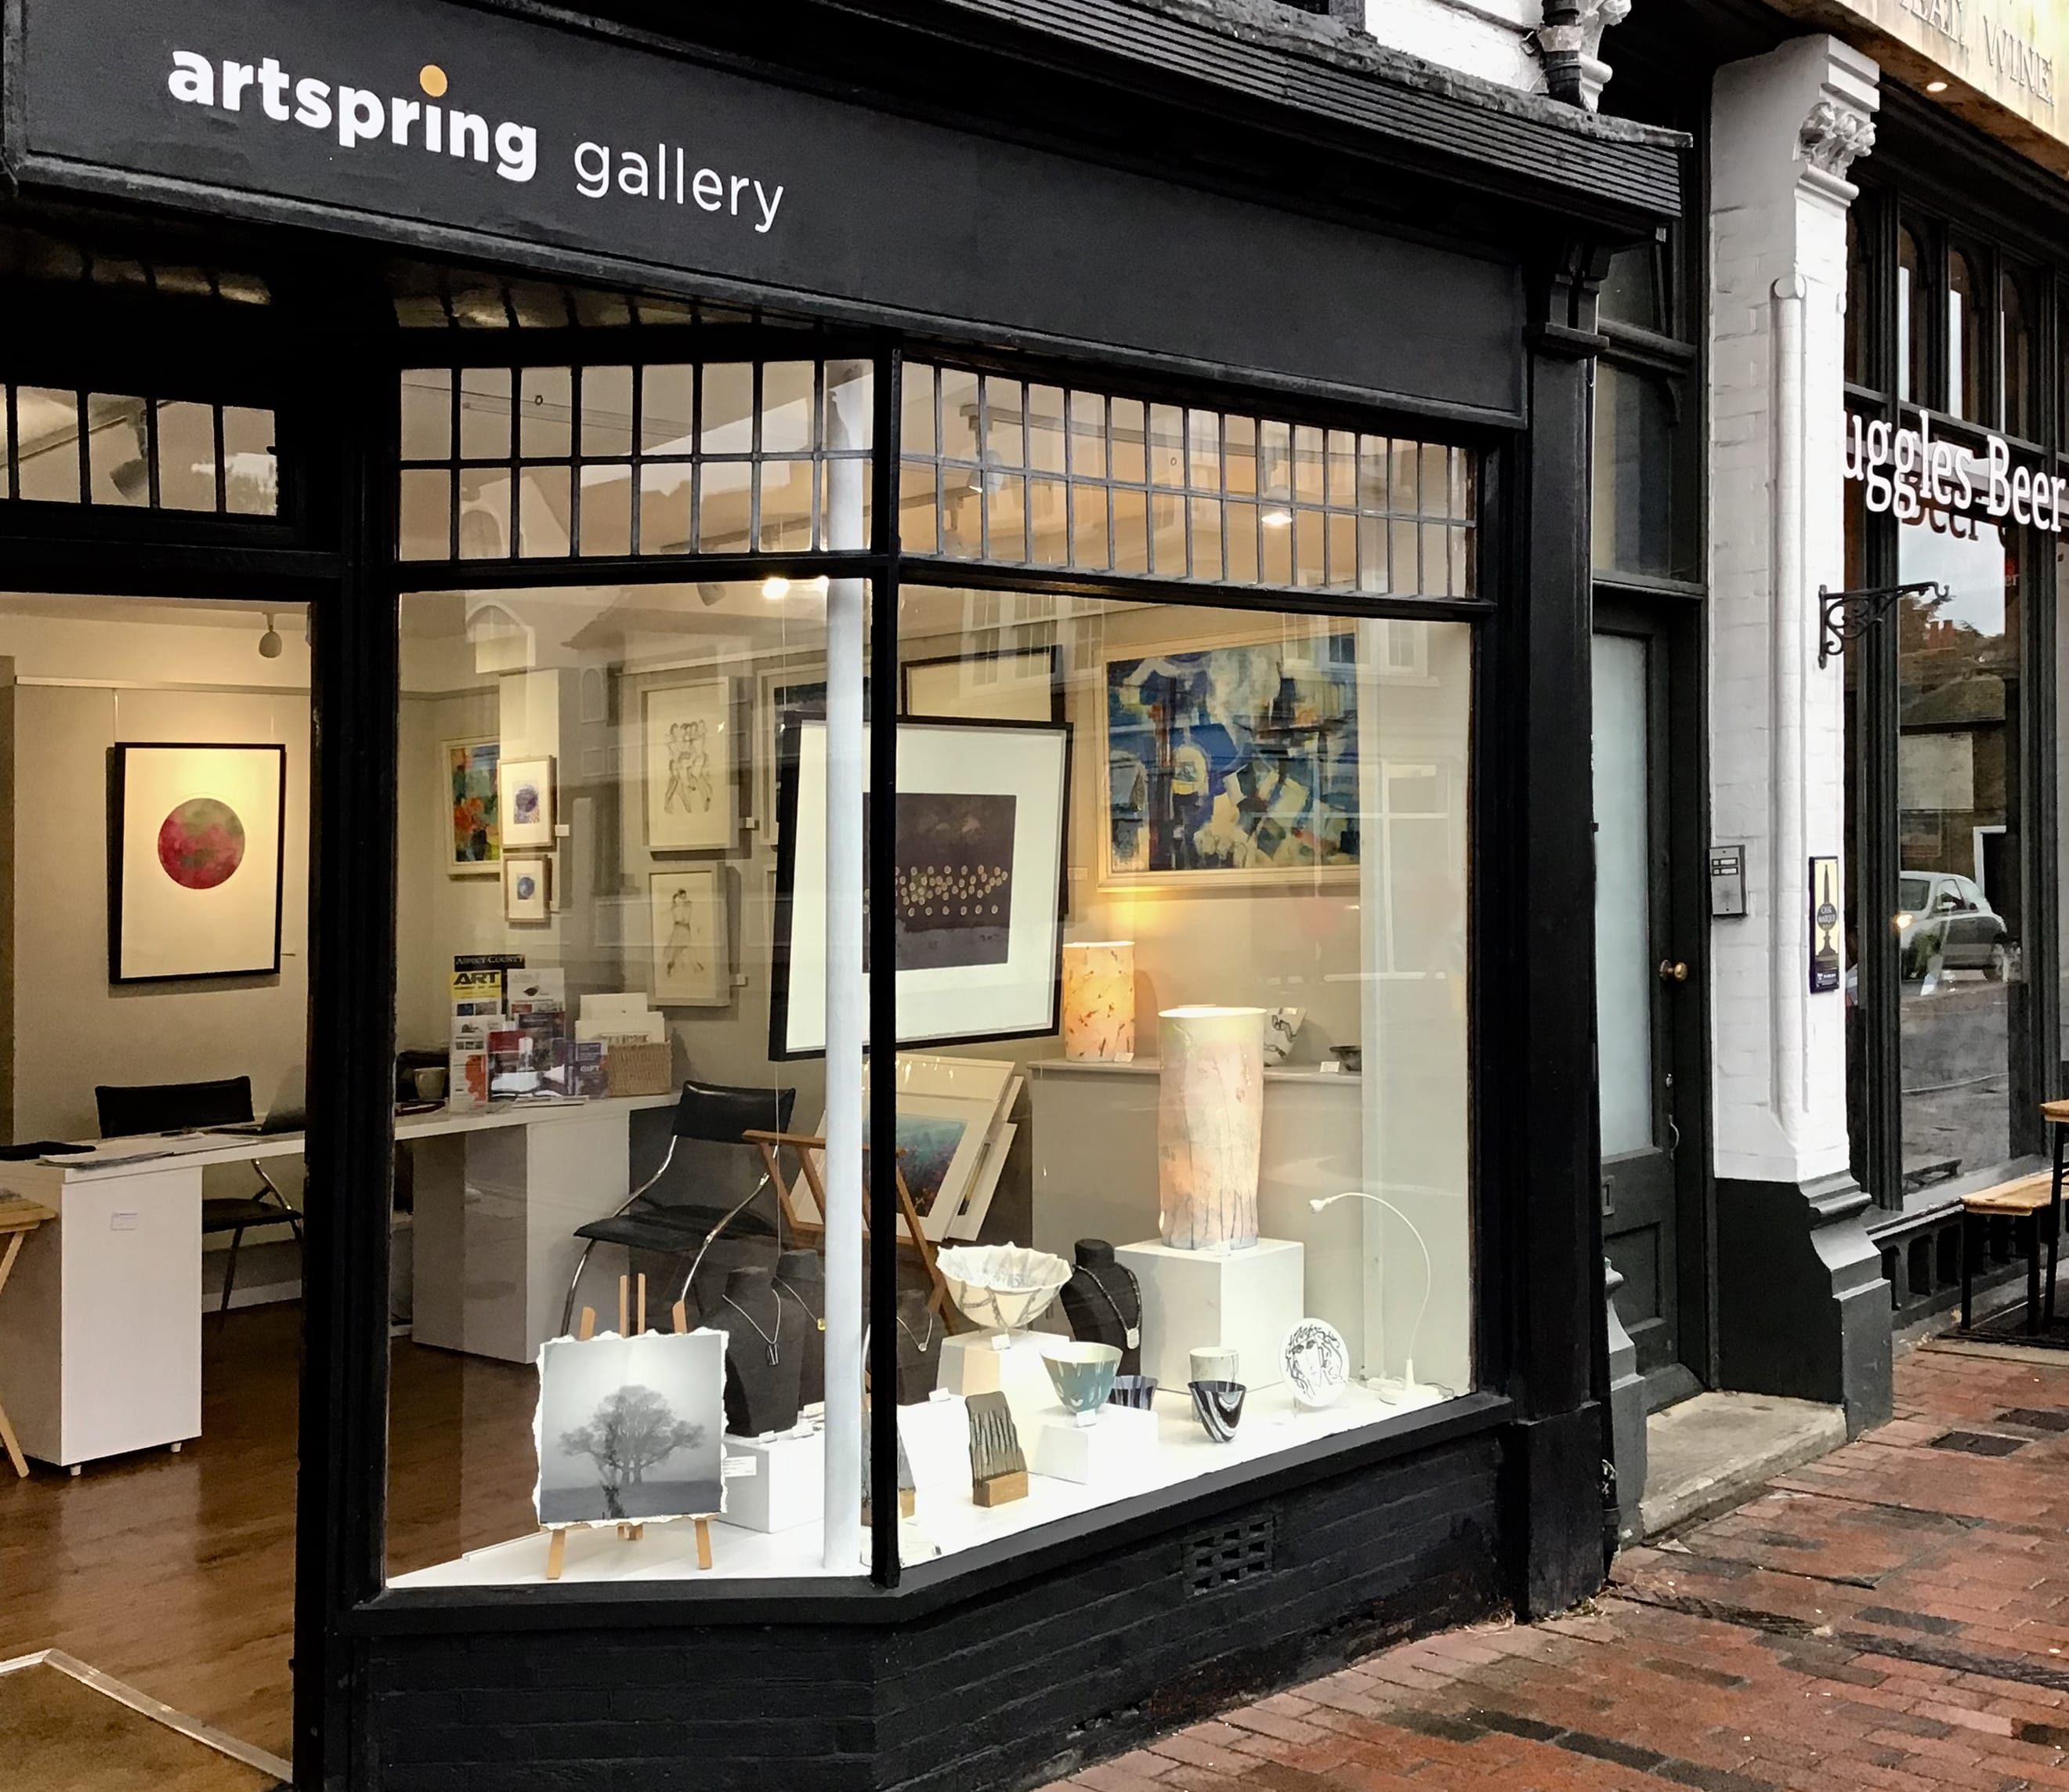 About ArtSpring Gallery